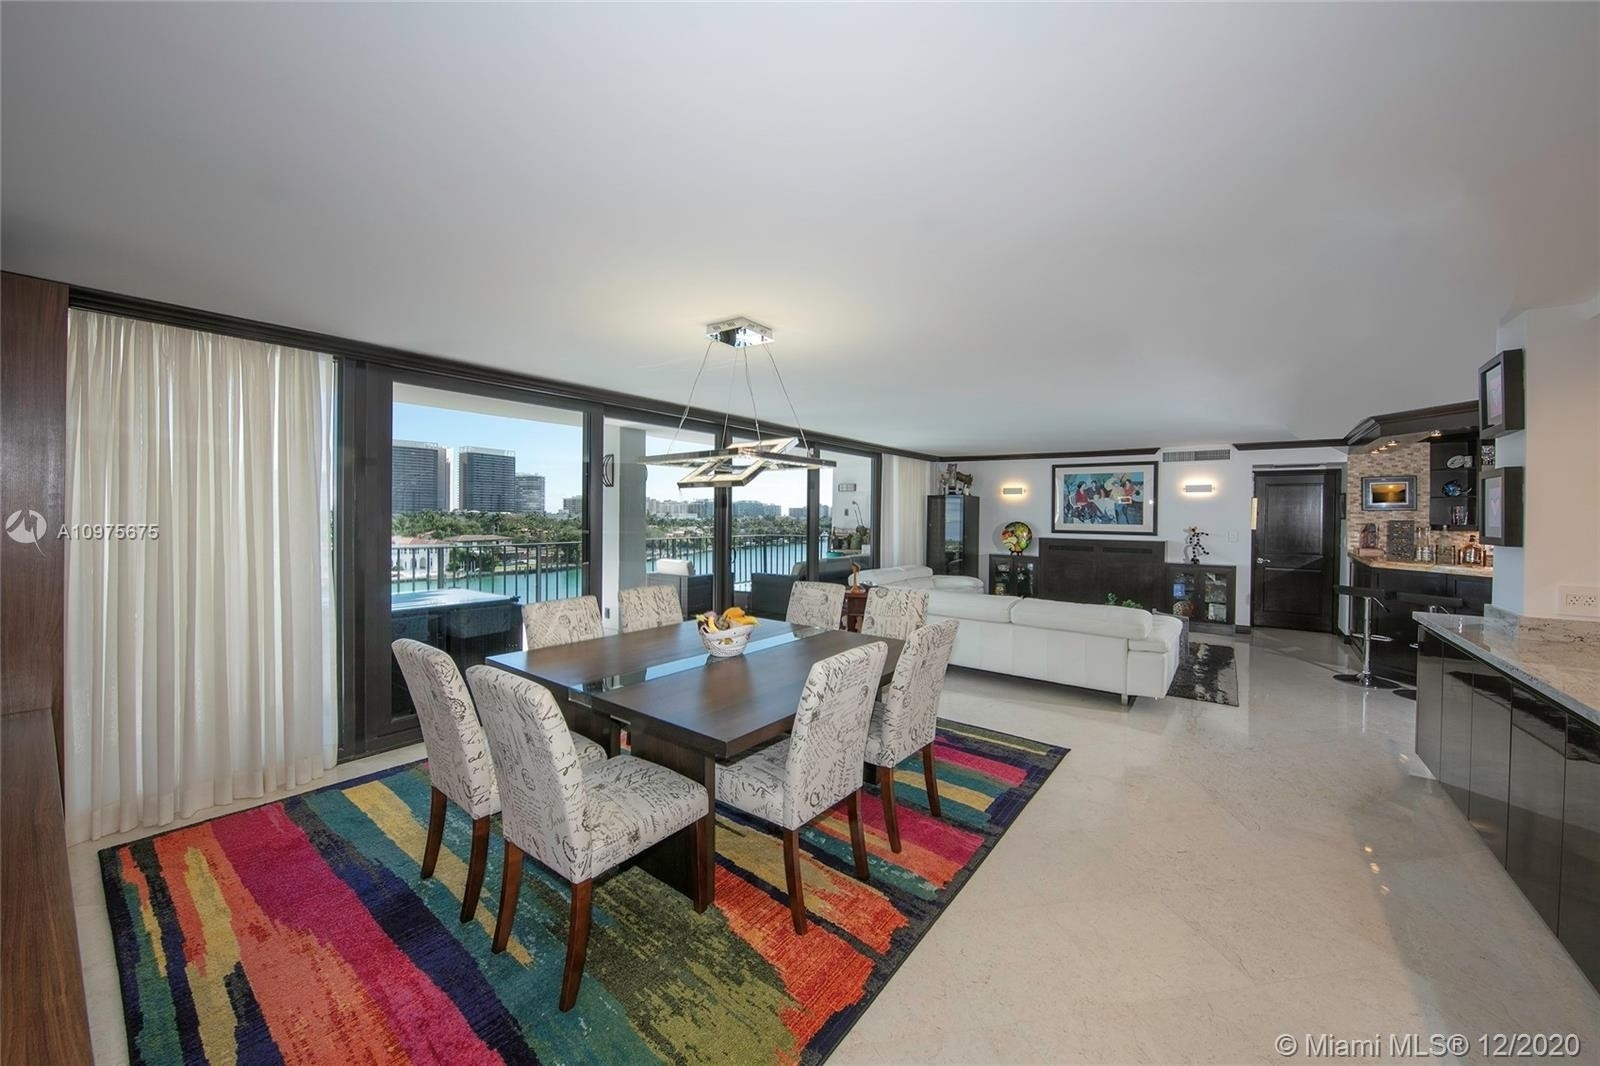 Condominium 為 特賣 在 10101 E Bay Harbor Dr , 704-05 Bay Harbor Islands, FL 33154